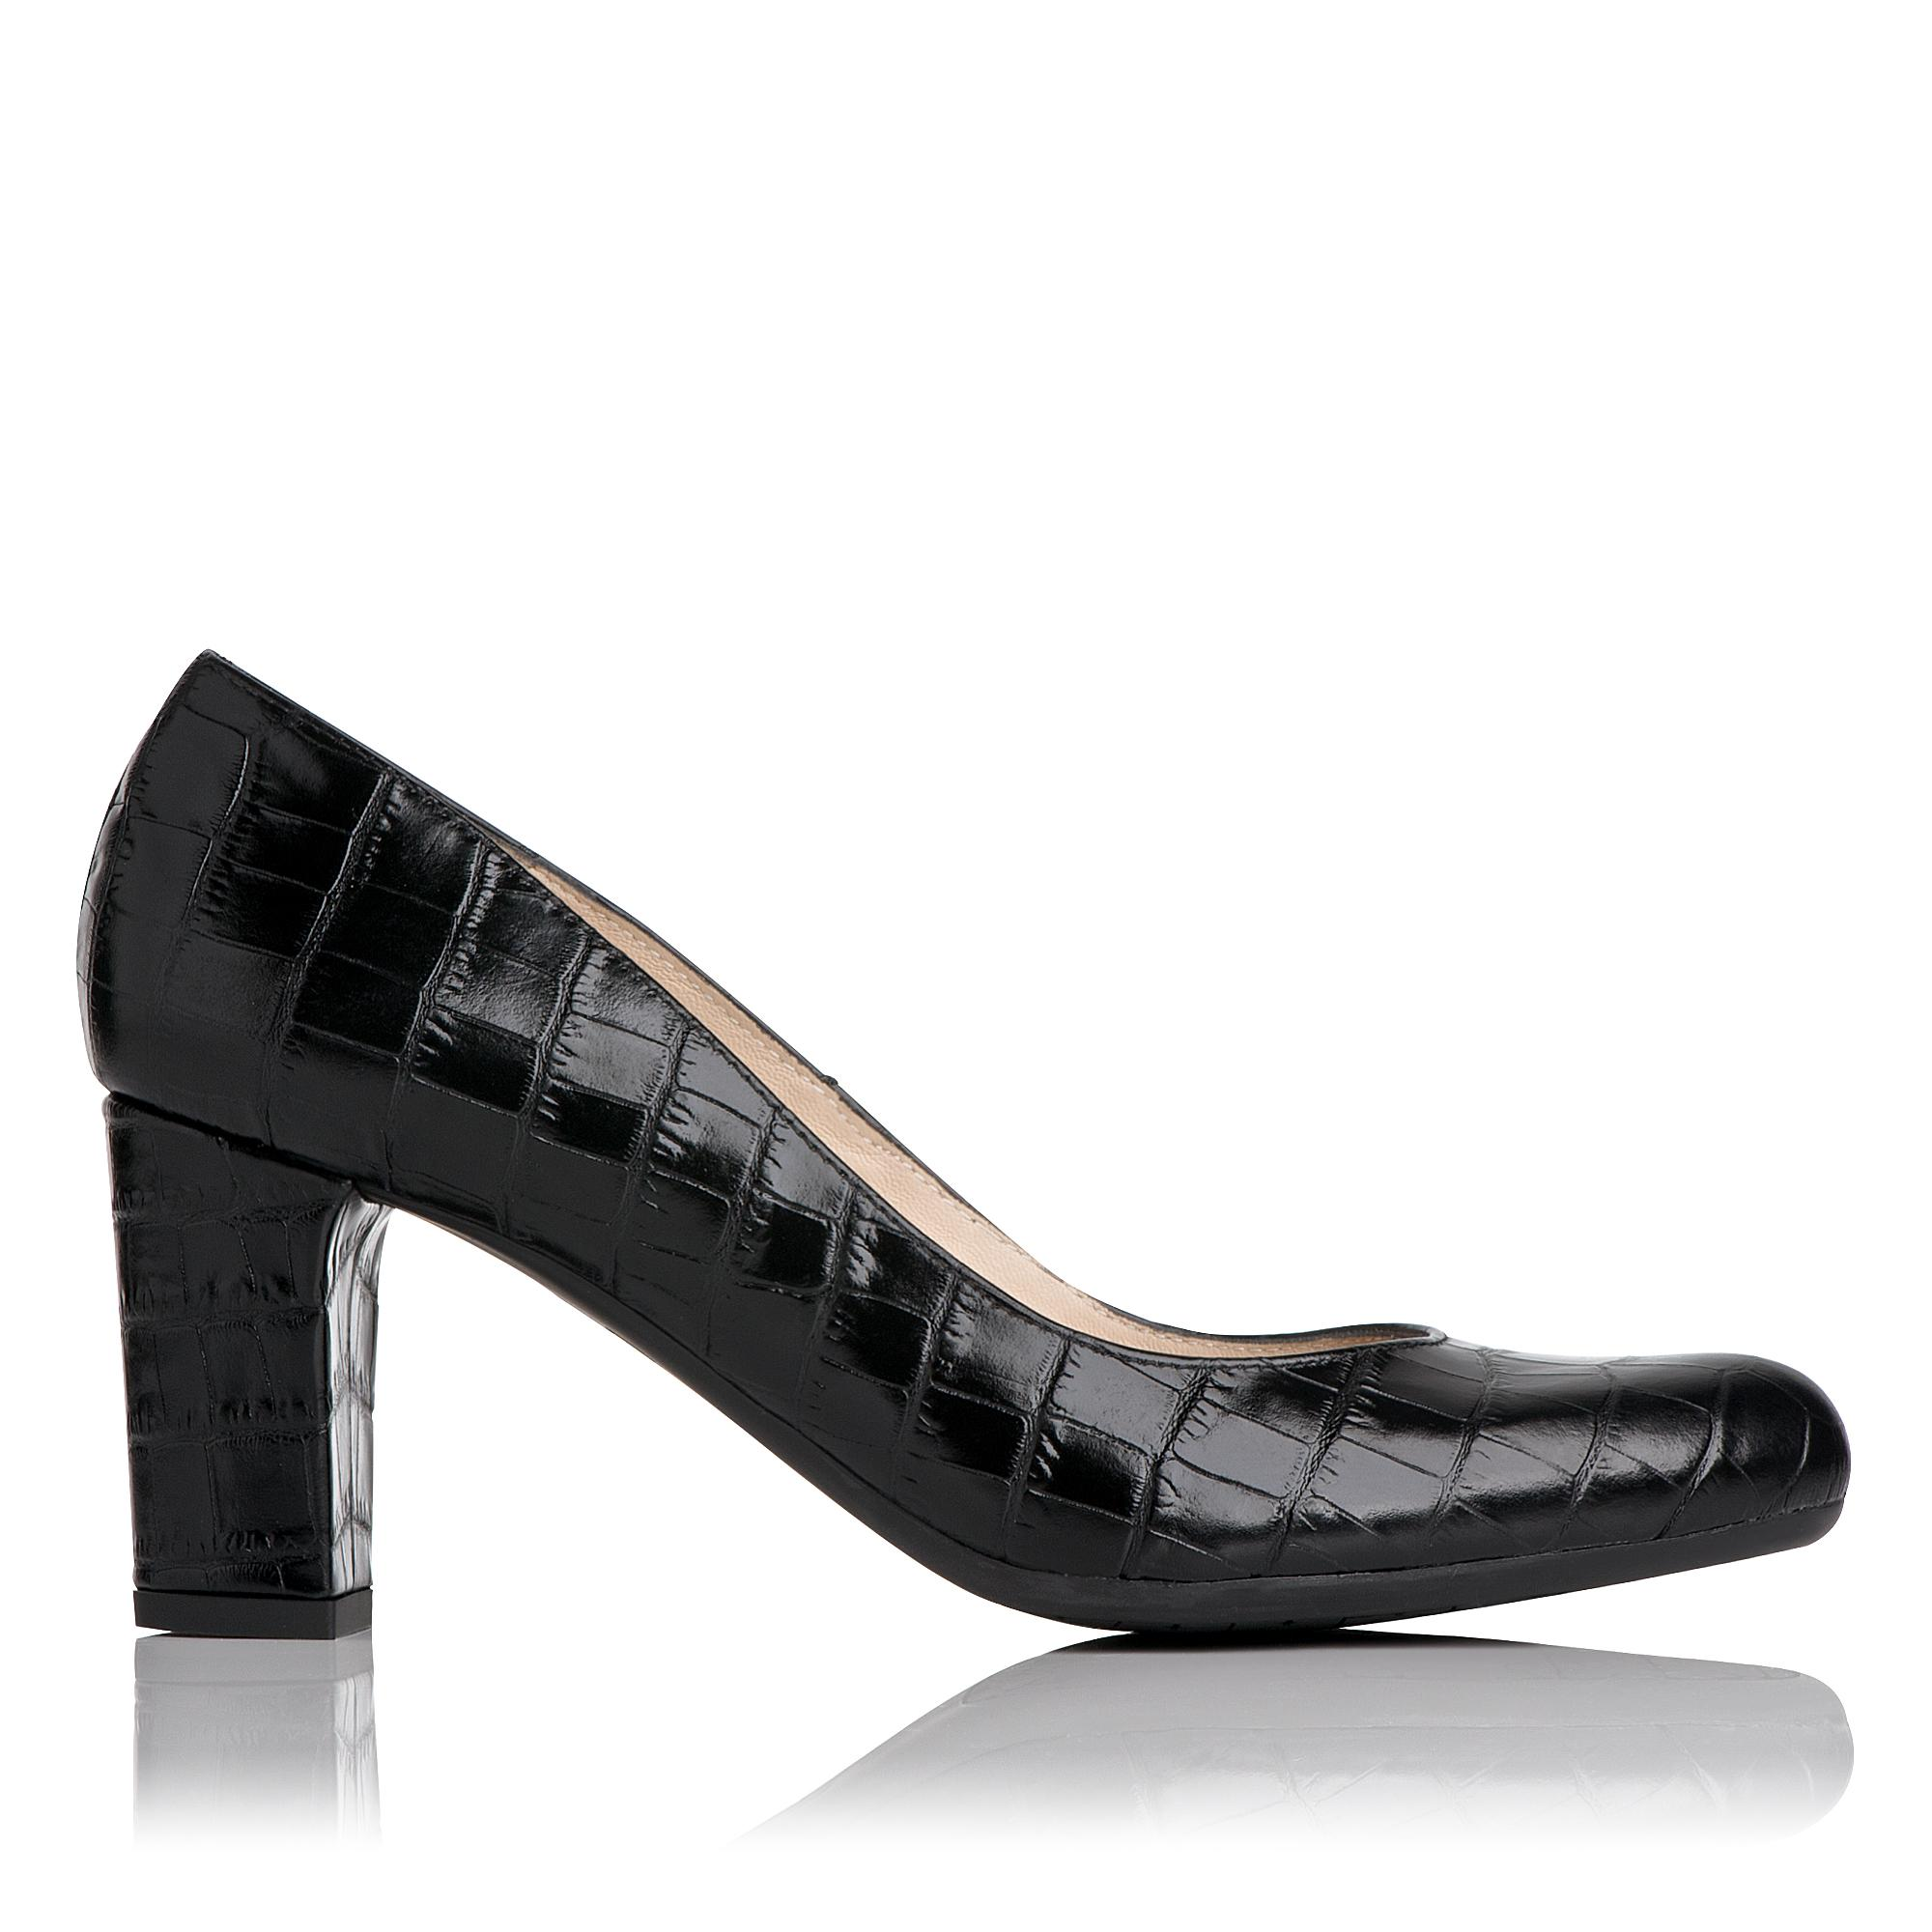 Sersha Black Croc Effect Block Heel